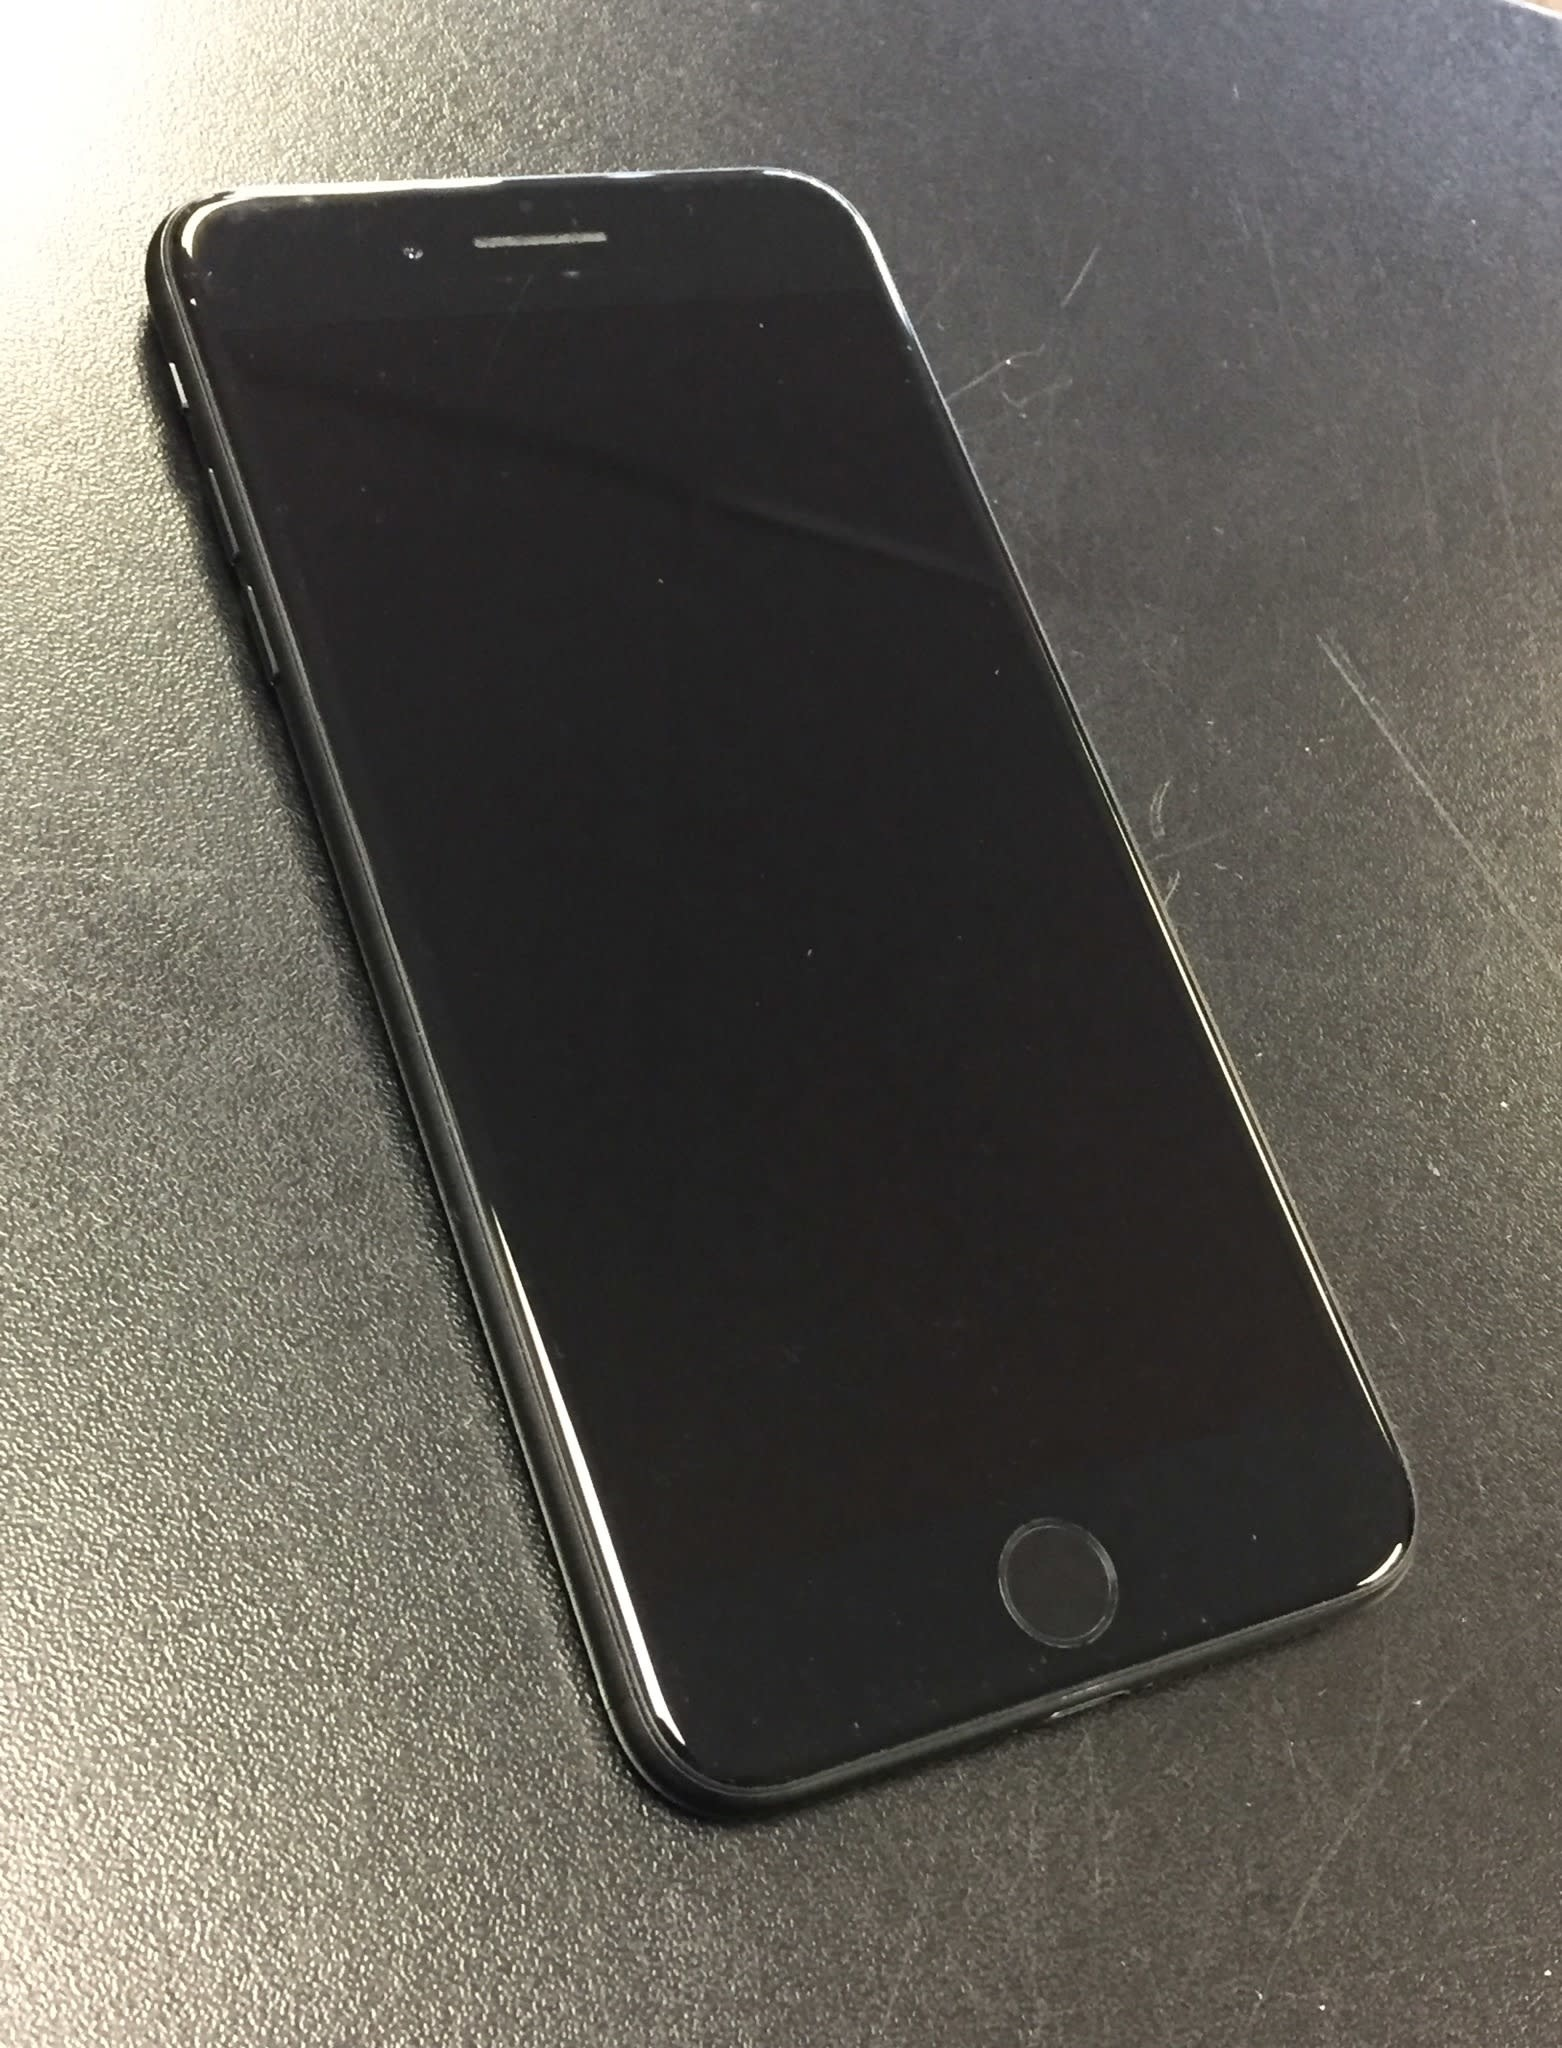 AT&T/Cricket Only - iPhone 7 Plus - 128GB - Jet Black